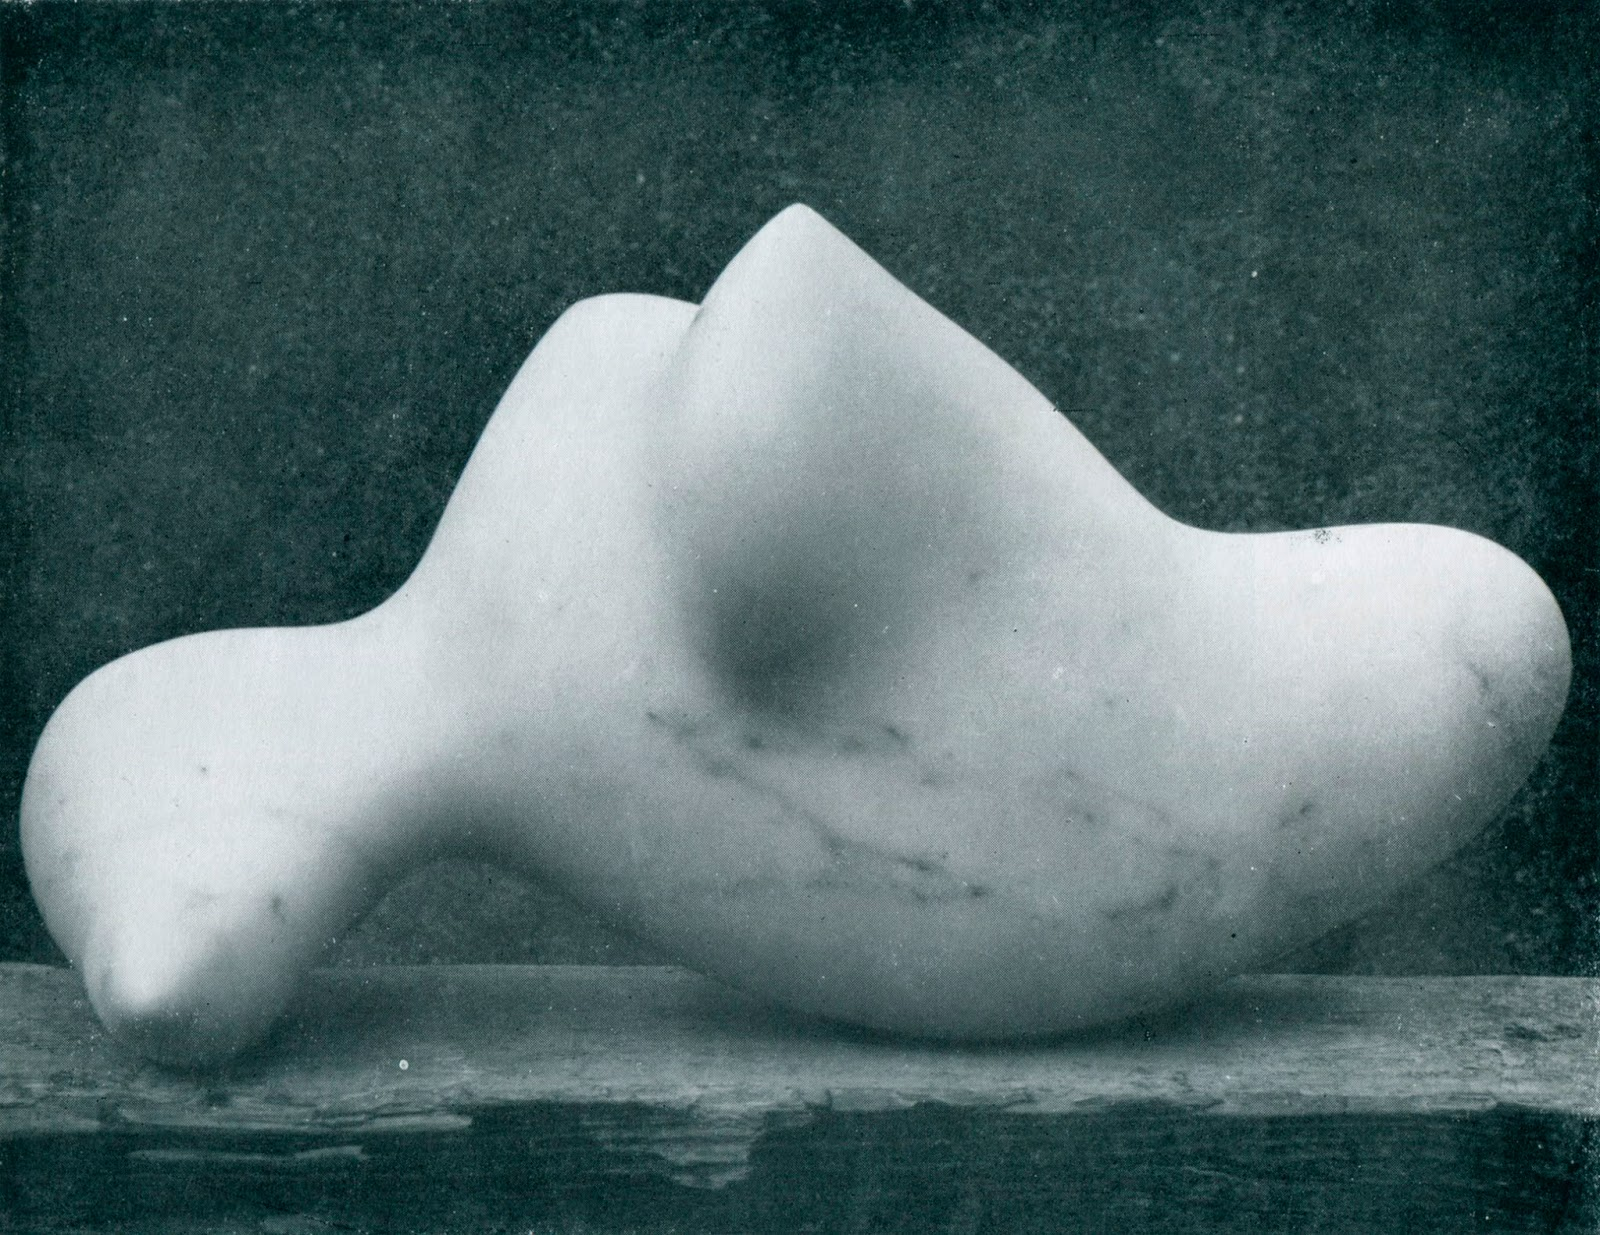 5. Aquatique (aquatic), 1953